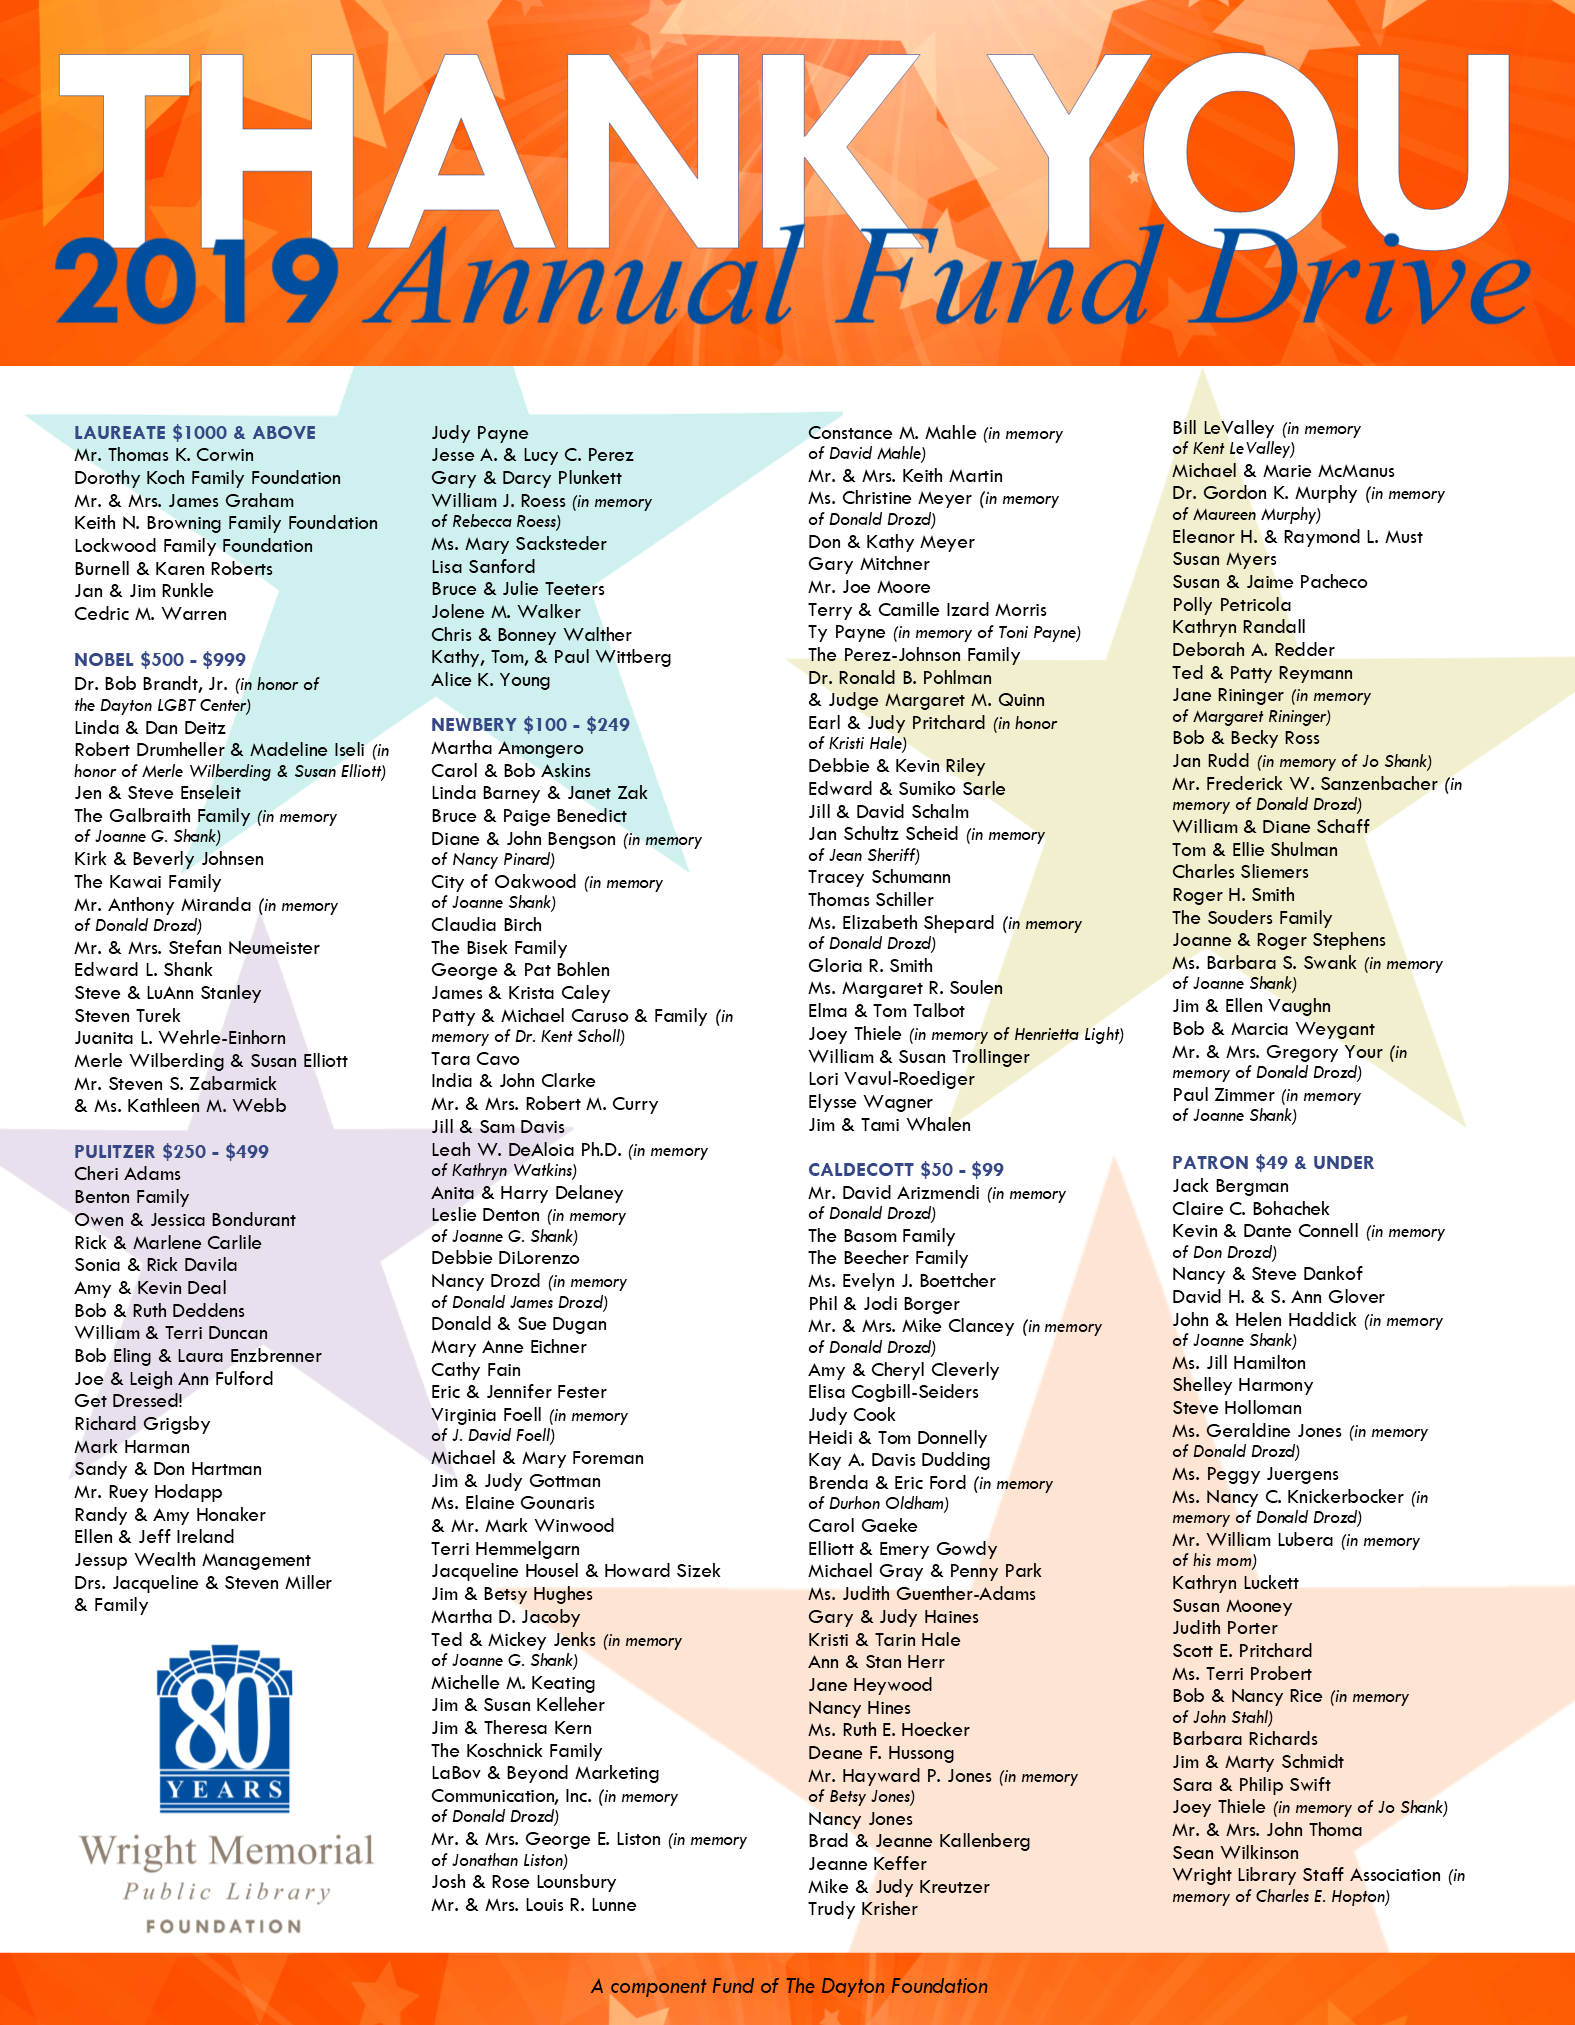 2019 donor list and thankyou